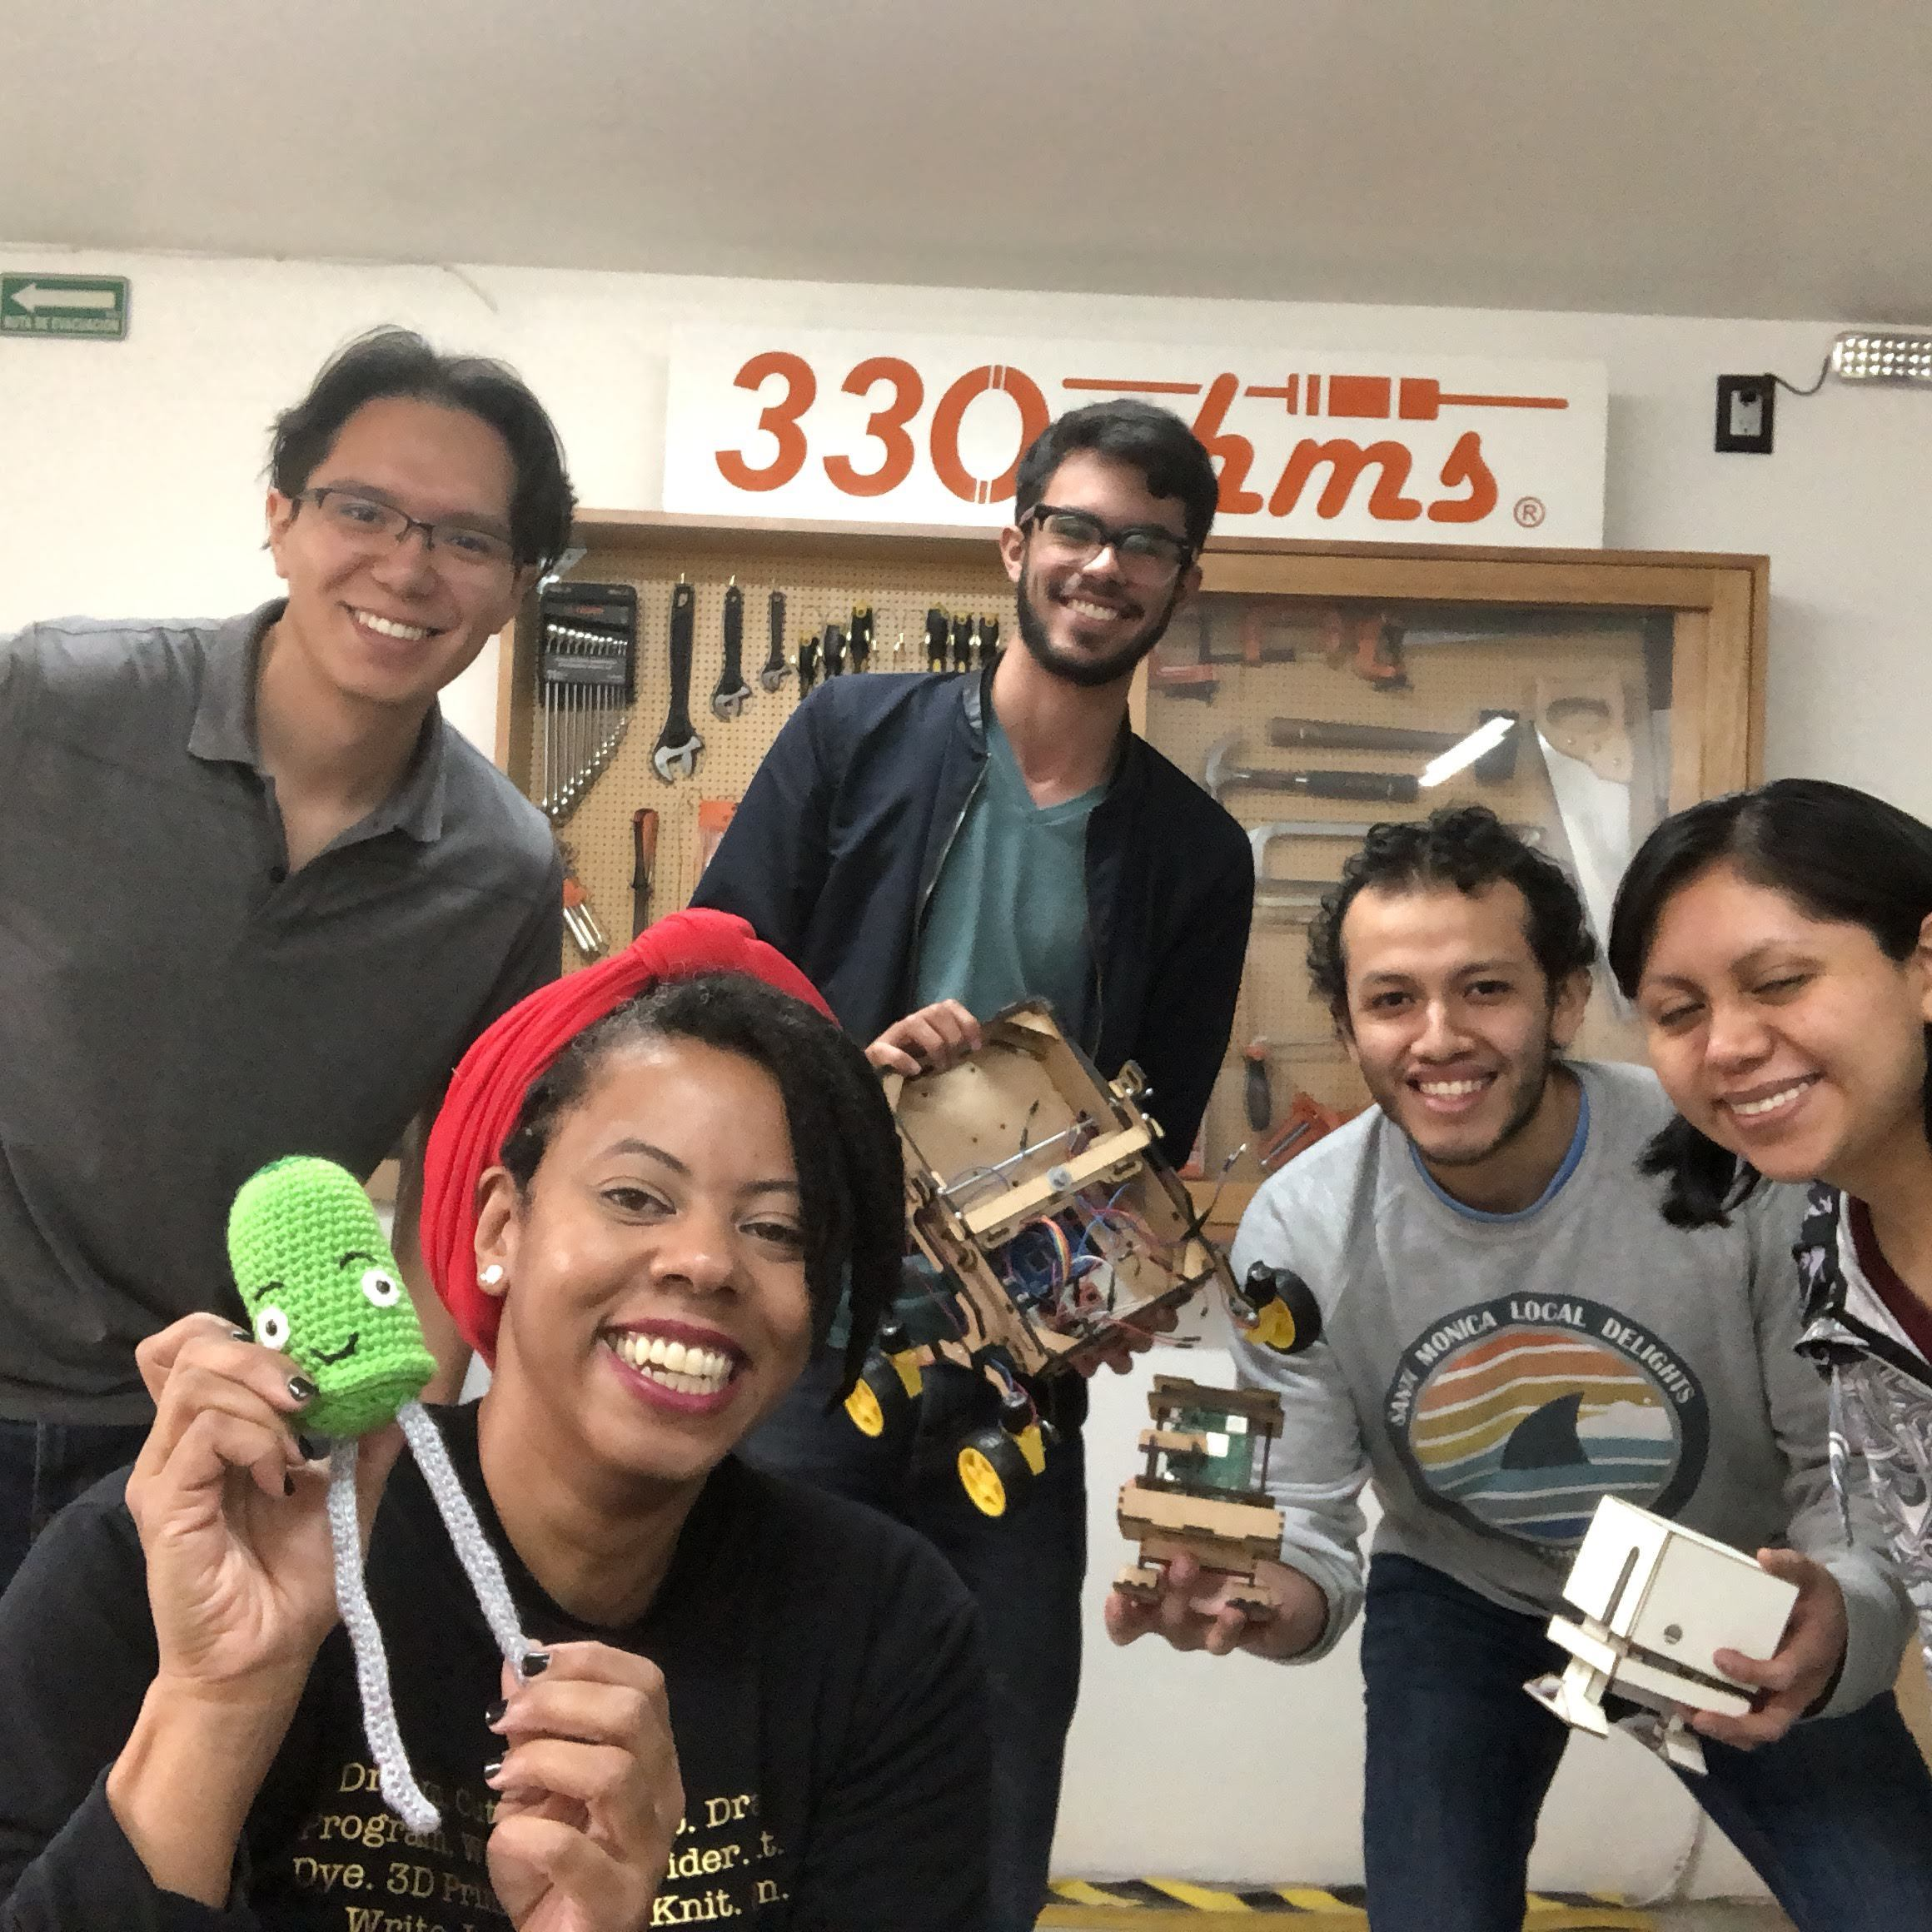 Makerspace Tour: 330 ohms, Mexico City